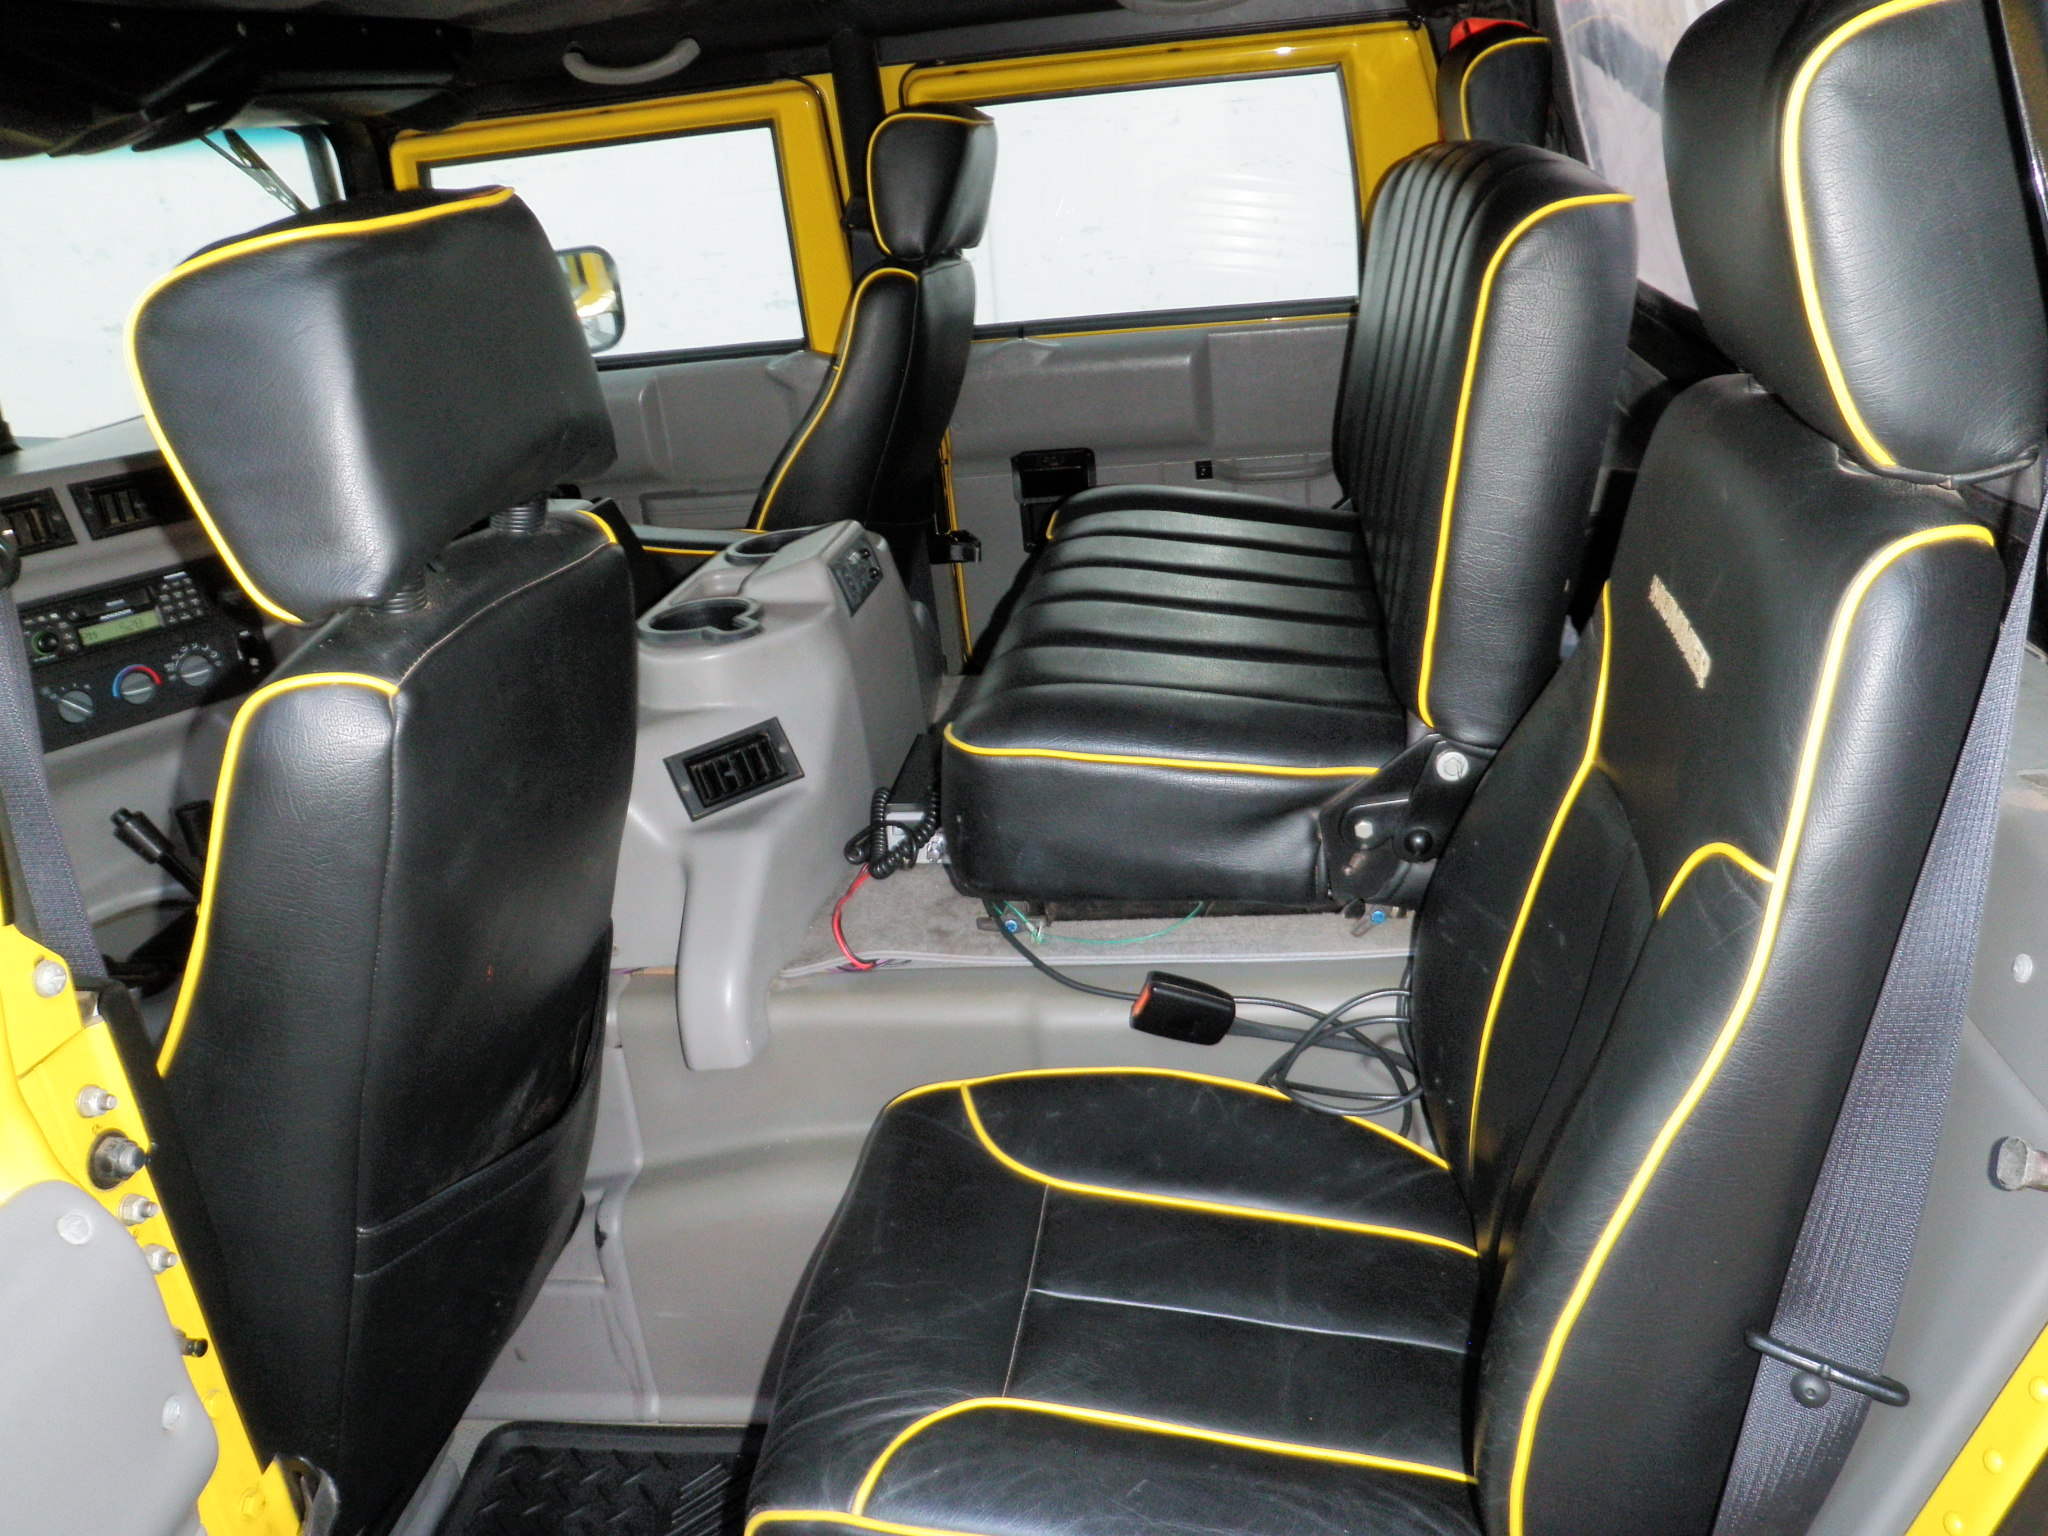 2002 Hummer H1 Opentop Fully Loaded…sold